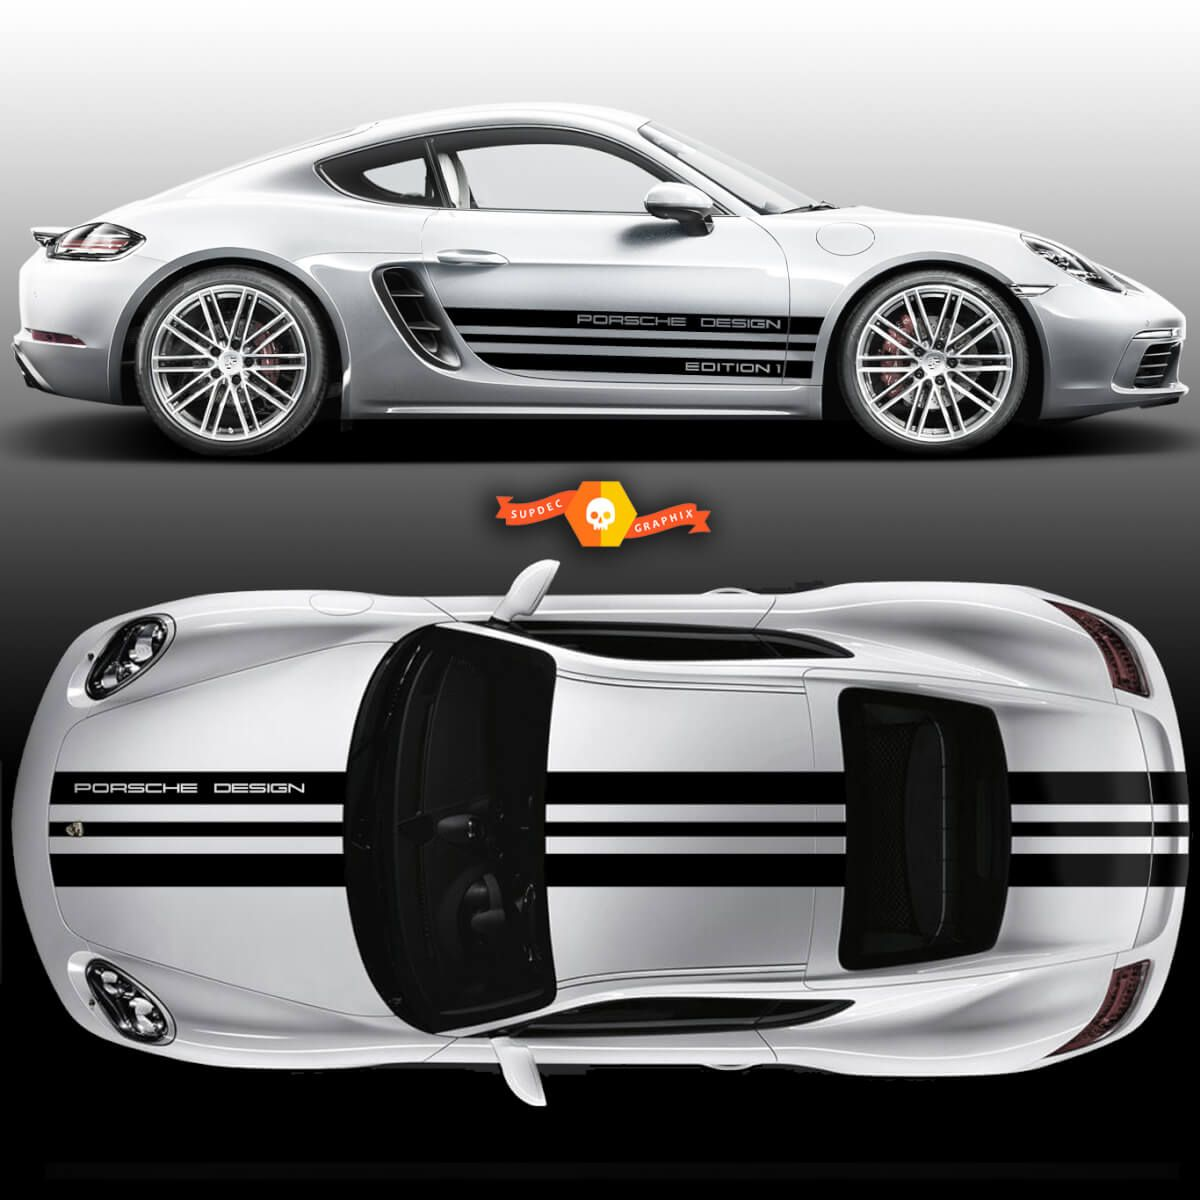 One Color Sport Cup Edition 1 Graphic Decals Kits Racing Stripe Over The Top Roof Porsche And Racing Stripes For Carrera Or Any Porsche Vinilos Para Autos Vinilos Autos [ 1200 x 1200 Pixel ]